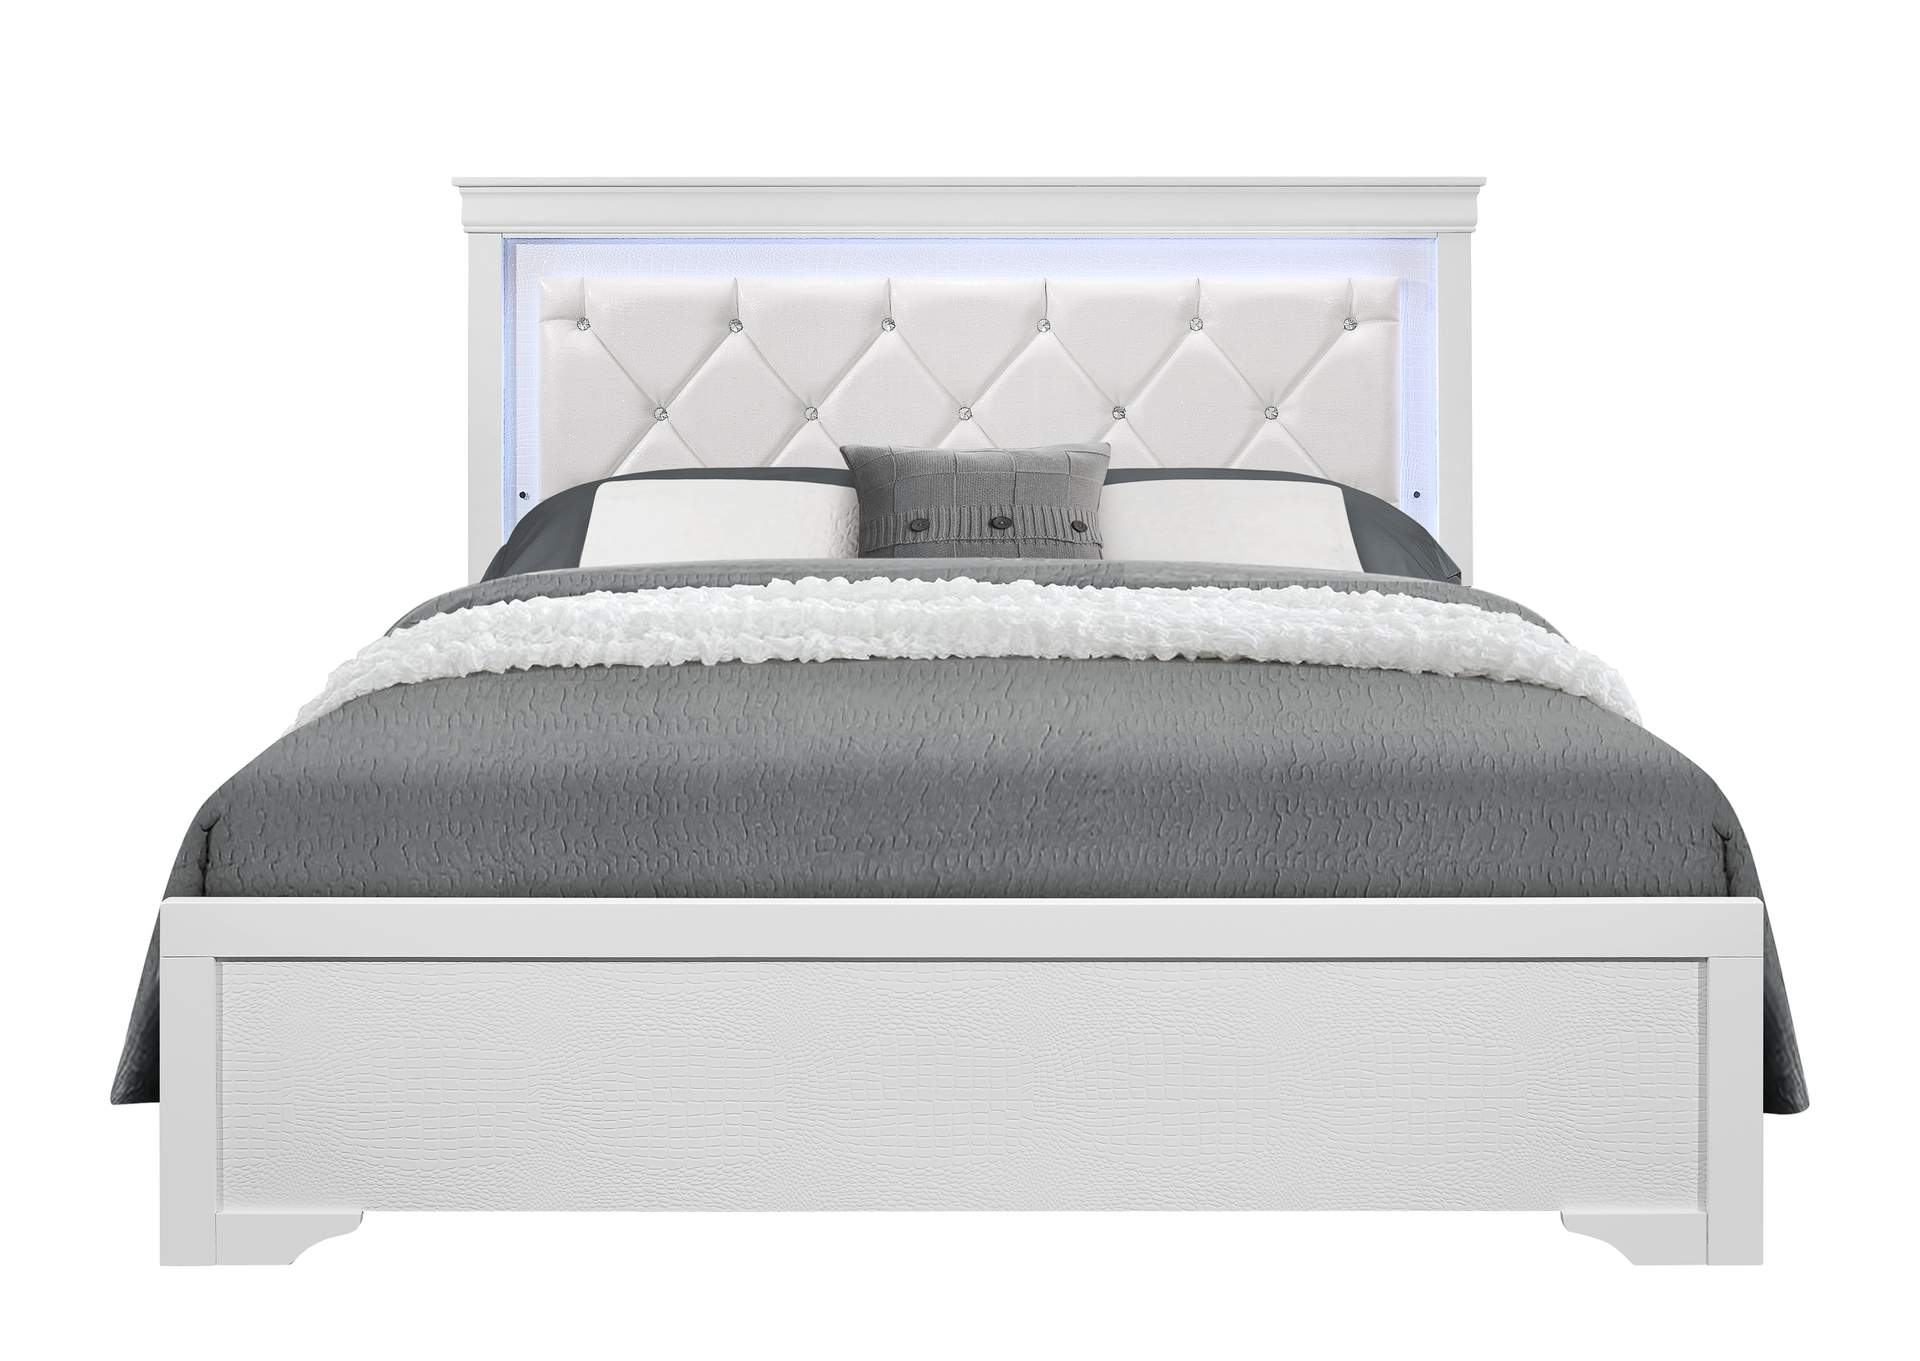 Pompei Metallic White King Bed,Global Furniture USA